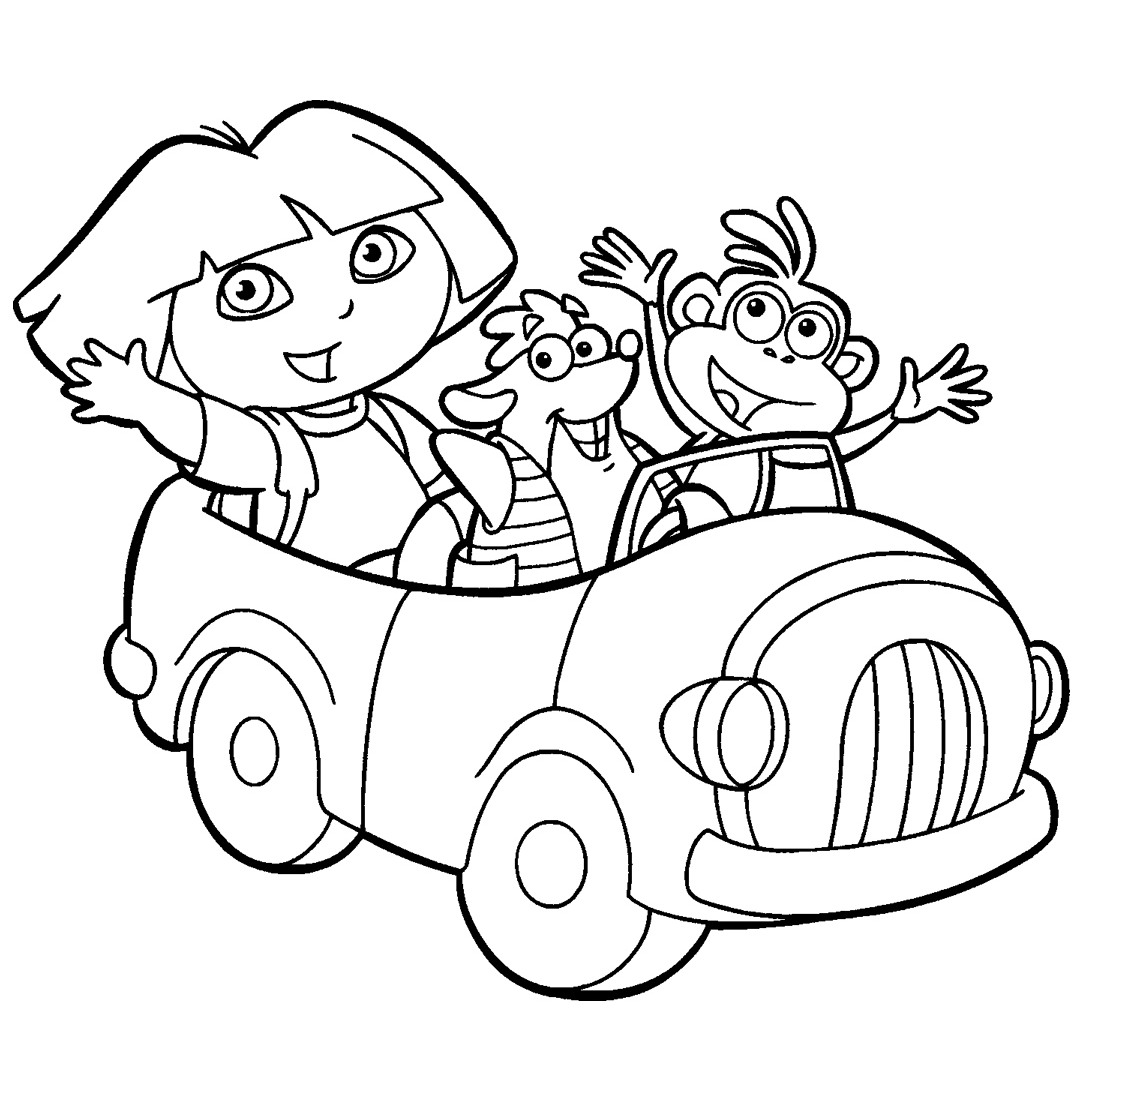 Dora the explorer coloring pages minister coloring for Dora black and white coloring pages